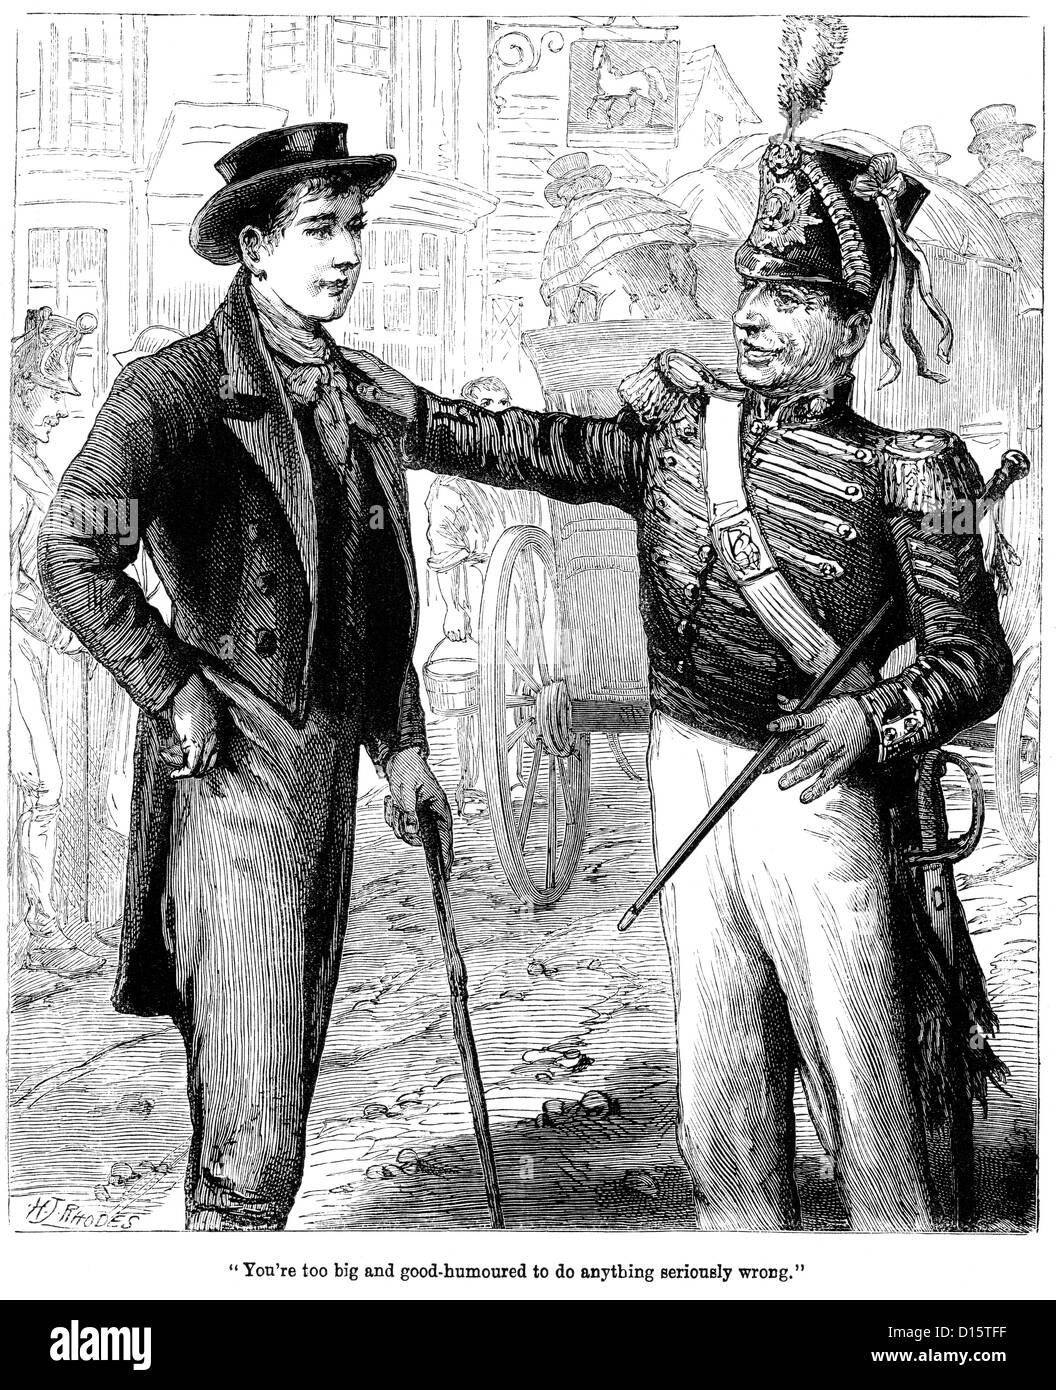 The Recruiting sergeant from the British army talking to a possible new recruit, circa 1815 - Stock Image